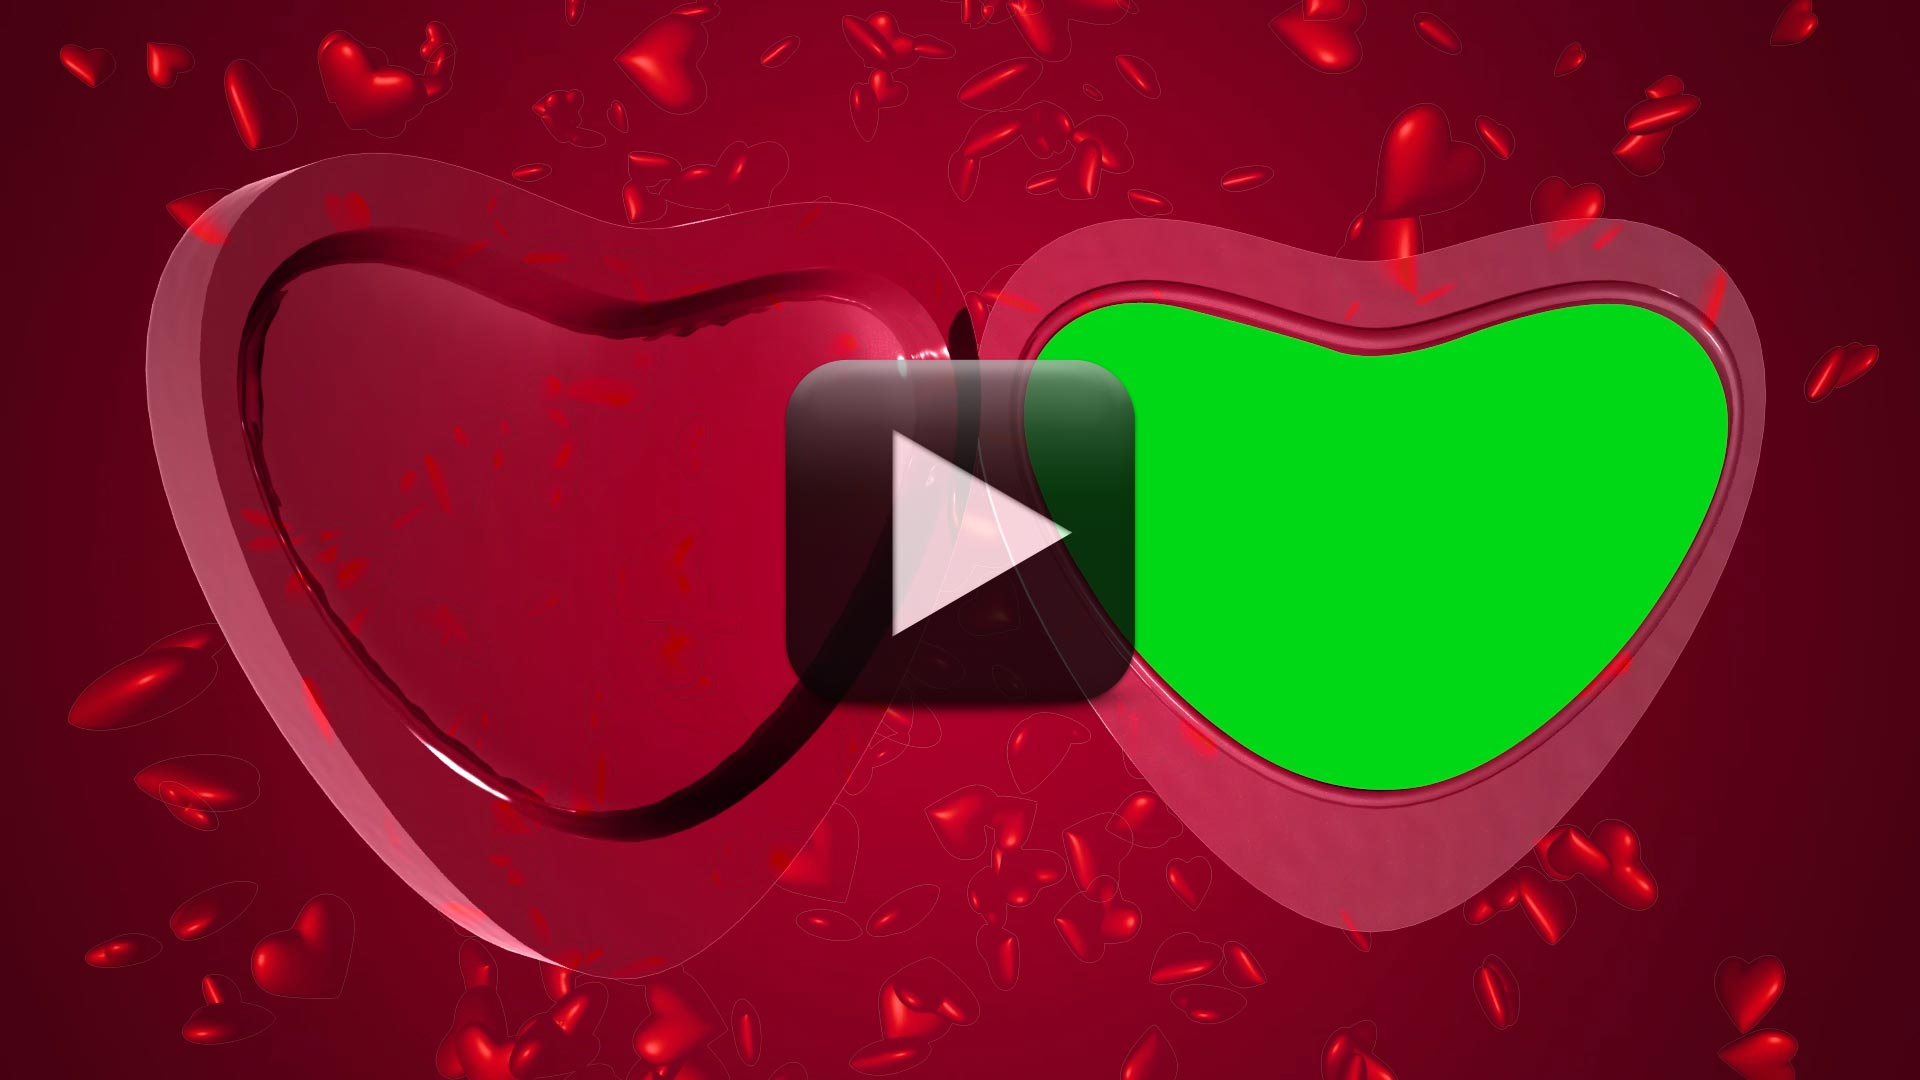 Open & Close Wedding Heart Animation Frame Video Background